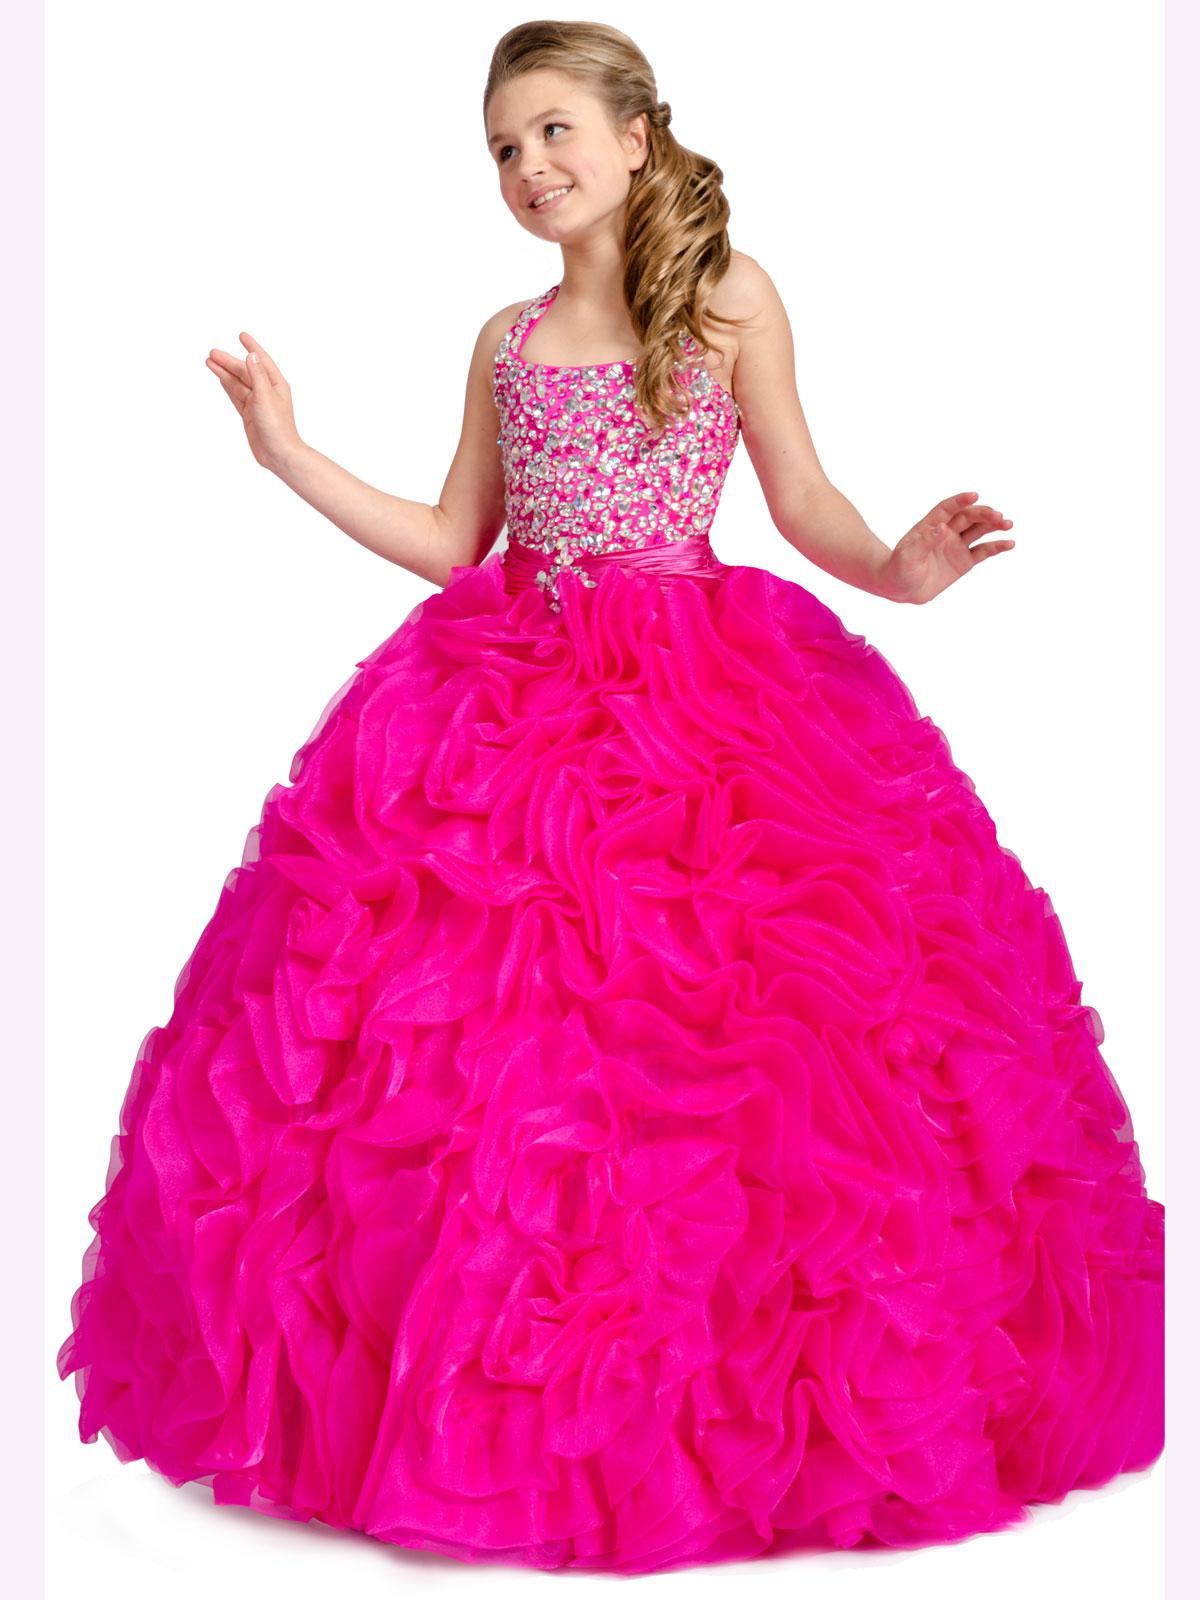 Images of Pink Sparkly Dress - Reikian